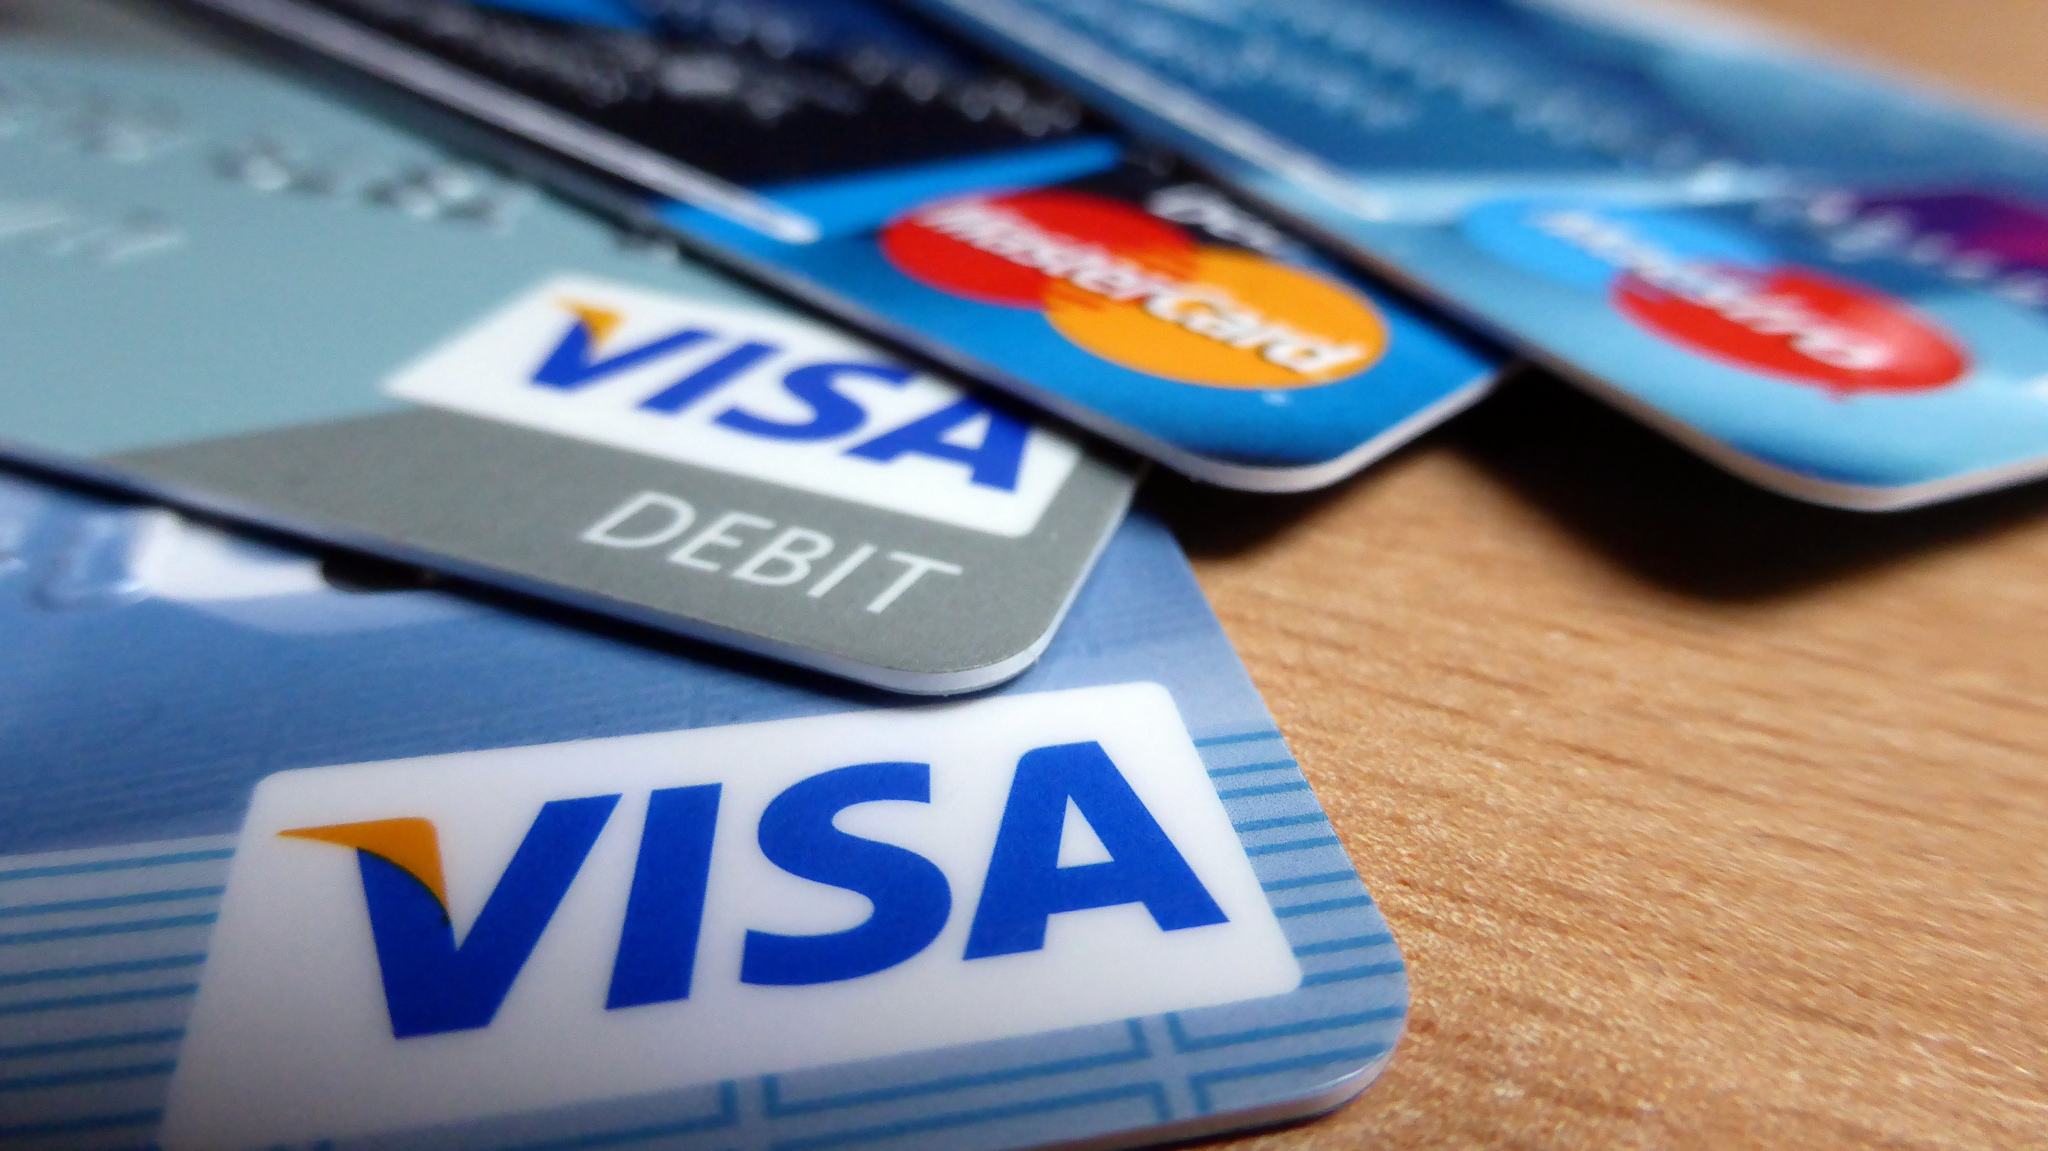 series of credit cards